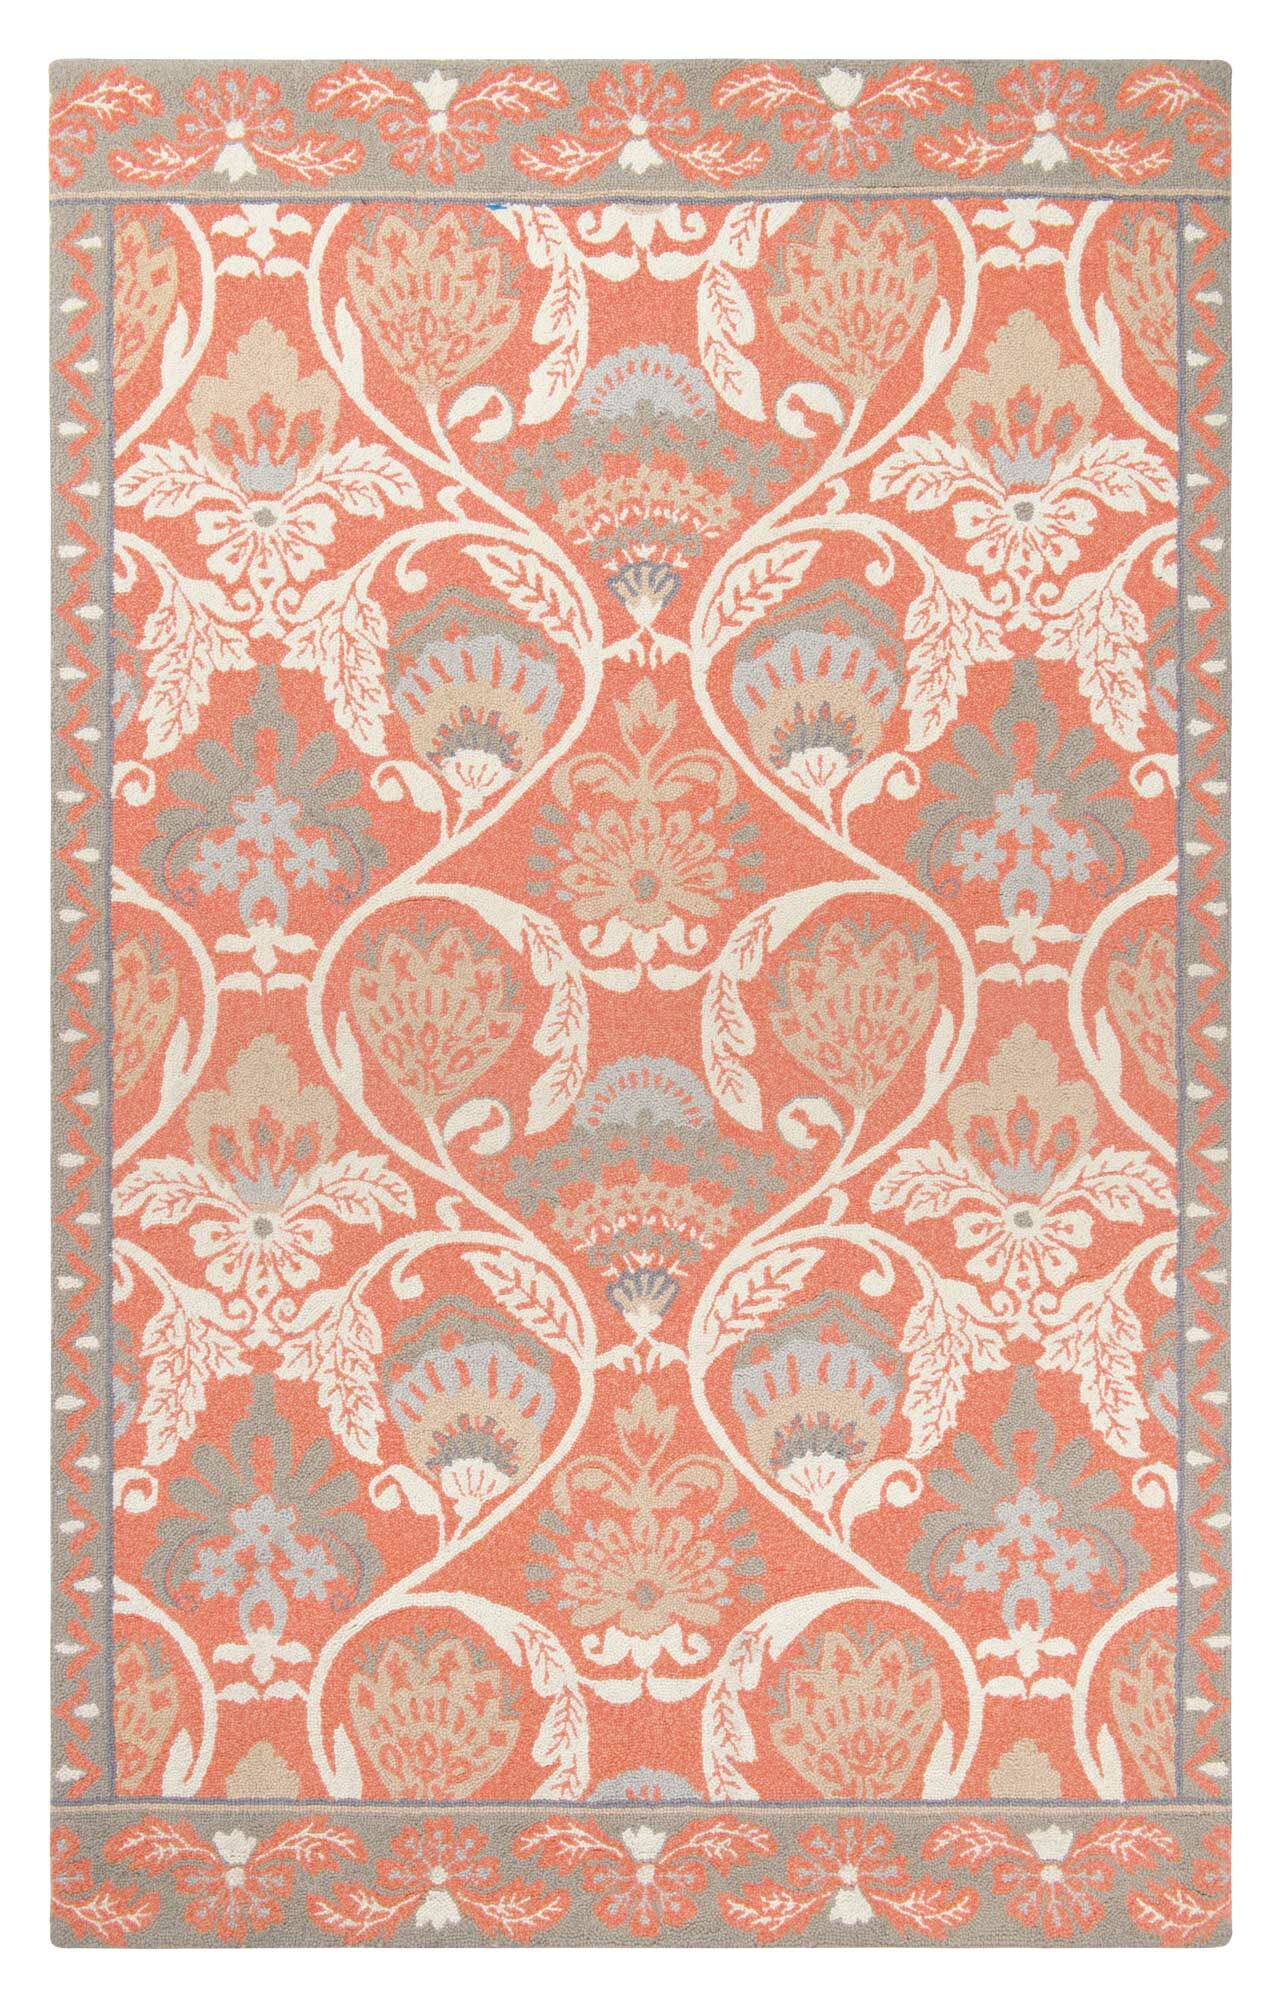 Quinn Hand-Hooked Coral Area Rug Rug Size: Rectangle 5' x 8'